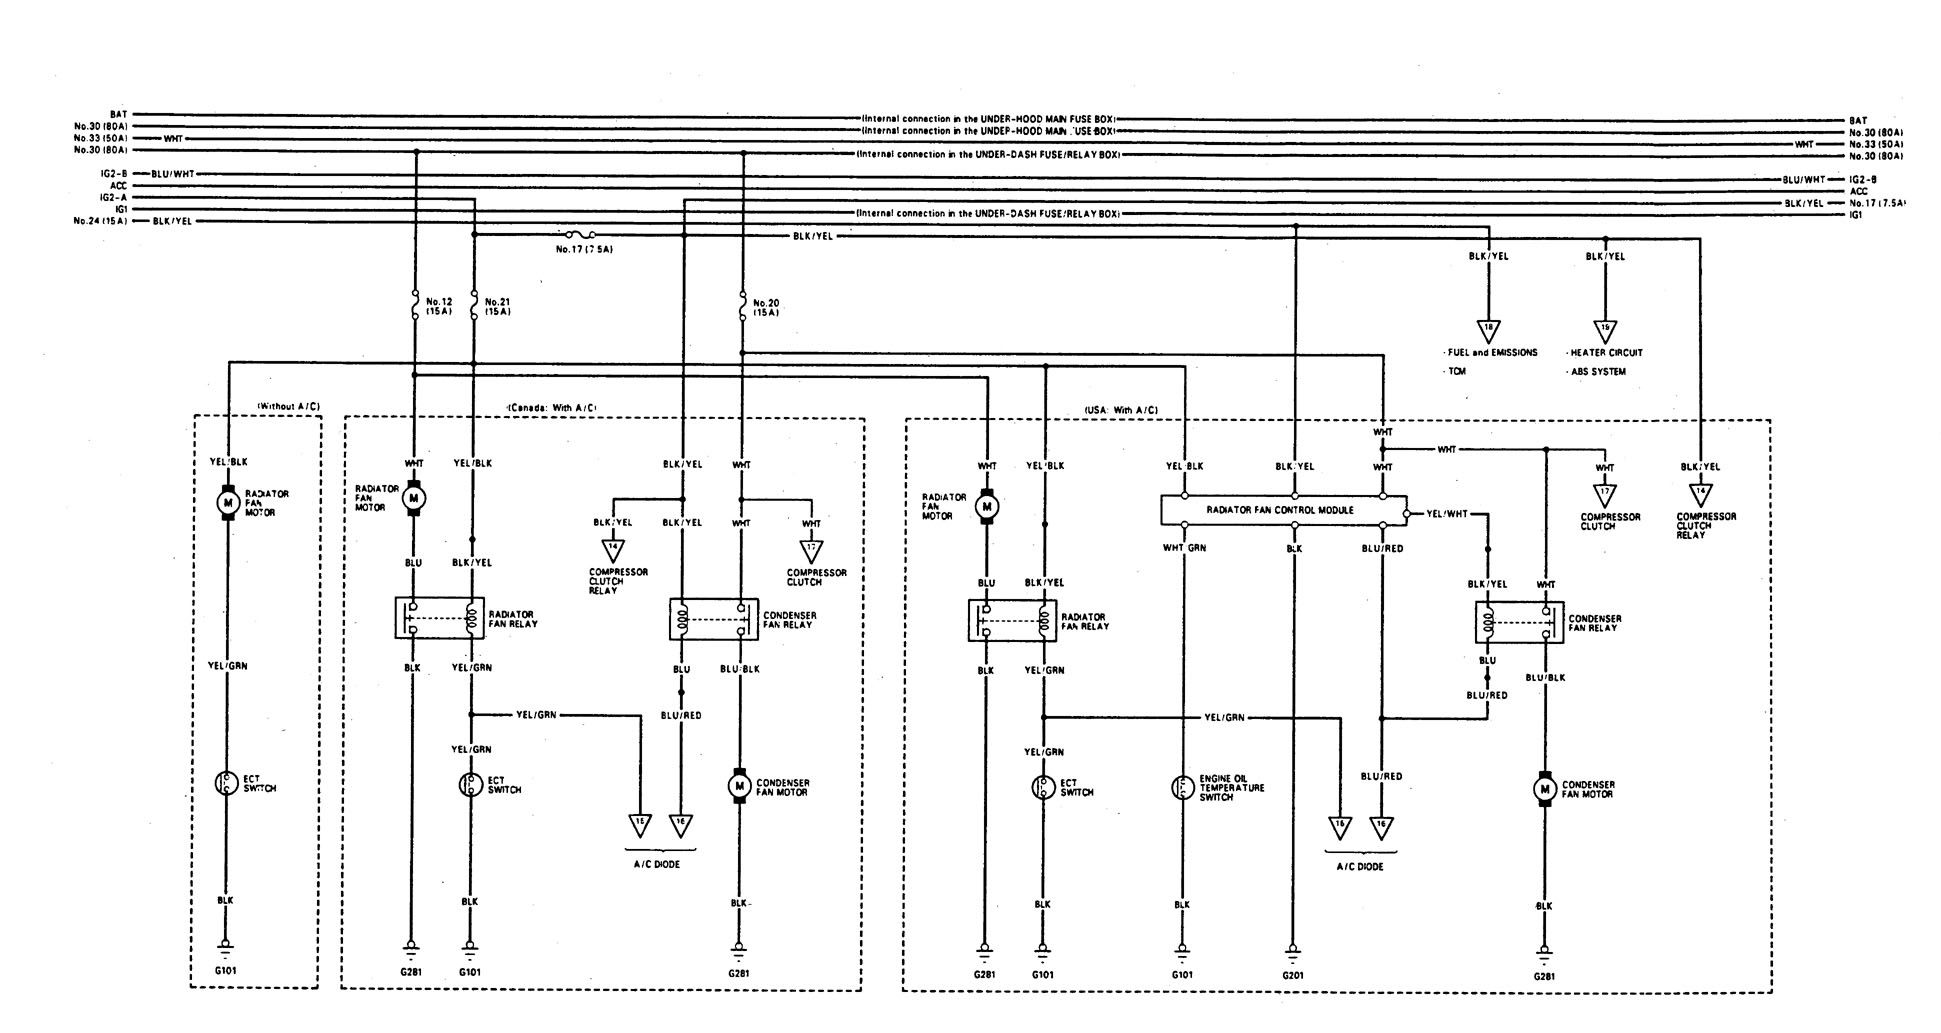 Acura Integra Wiring Diagram: Acura Integra (1993) u2013 wiring diagrams u2013 cooling fans u2013 CARKNOWLEDGE,Design